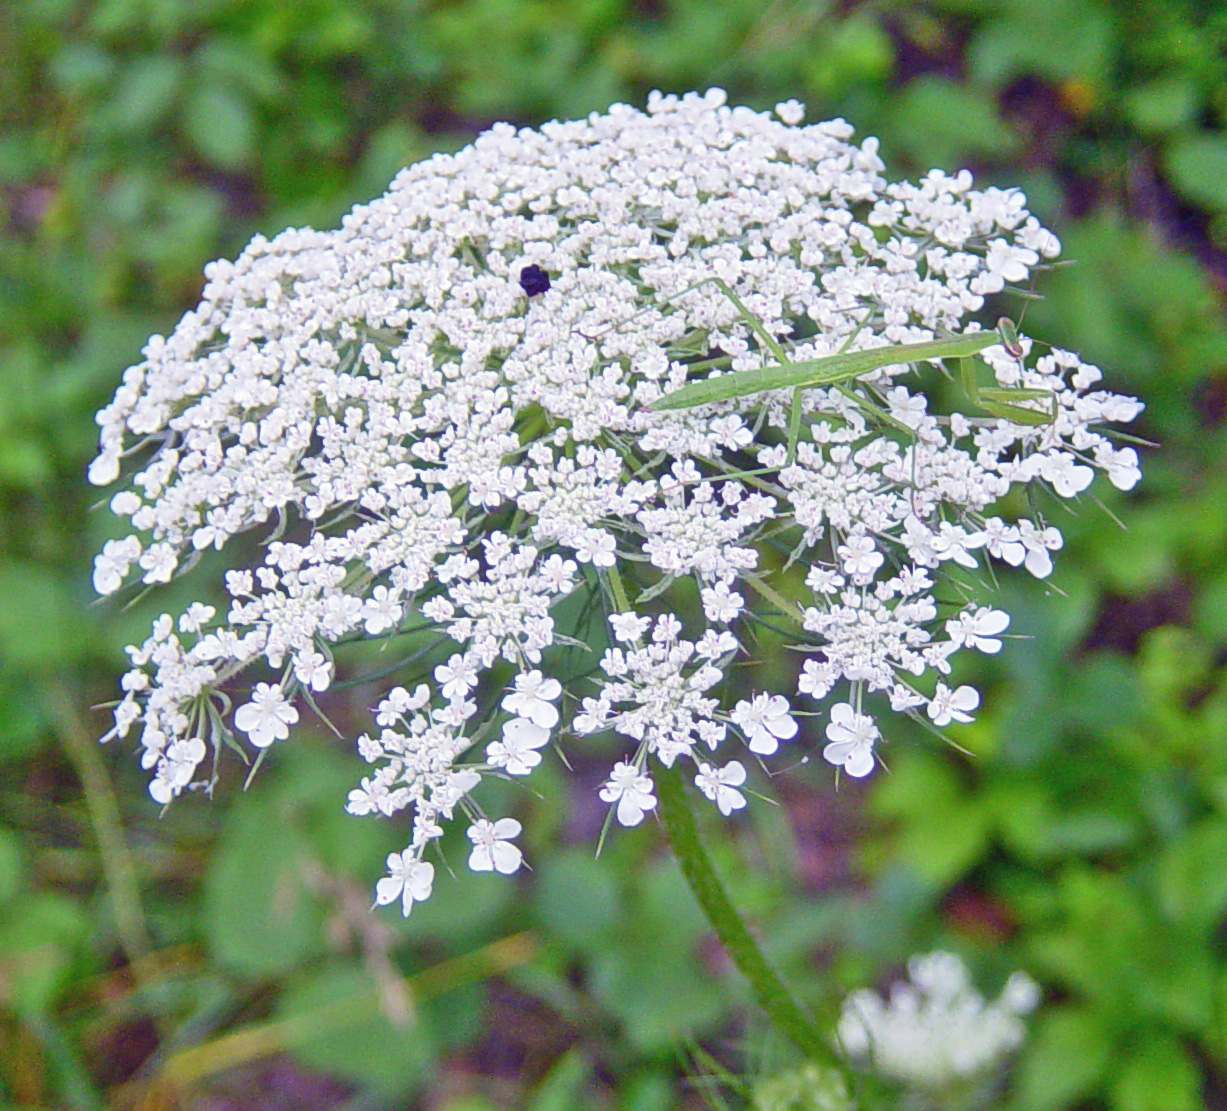 Queen Ann's Lace (Daucus Carota, or Wild Carrot)